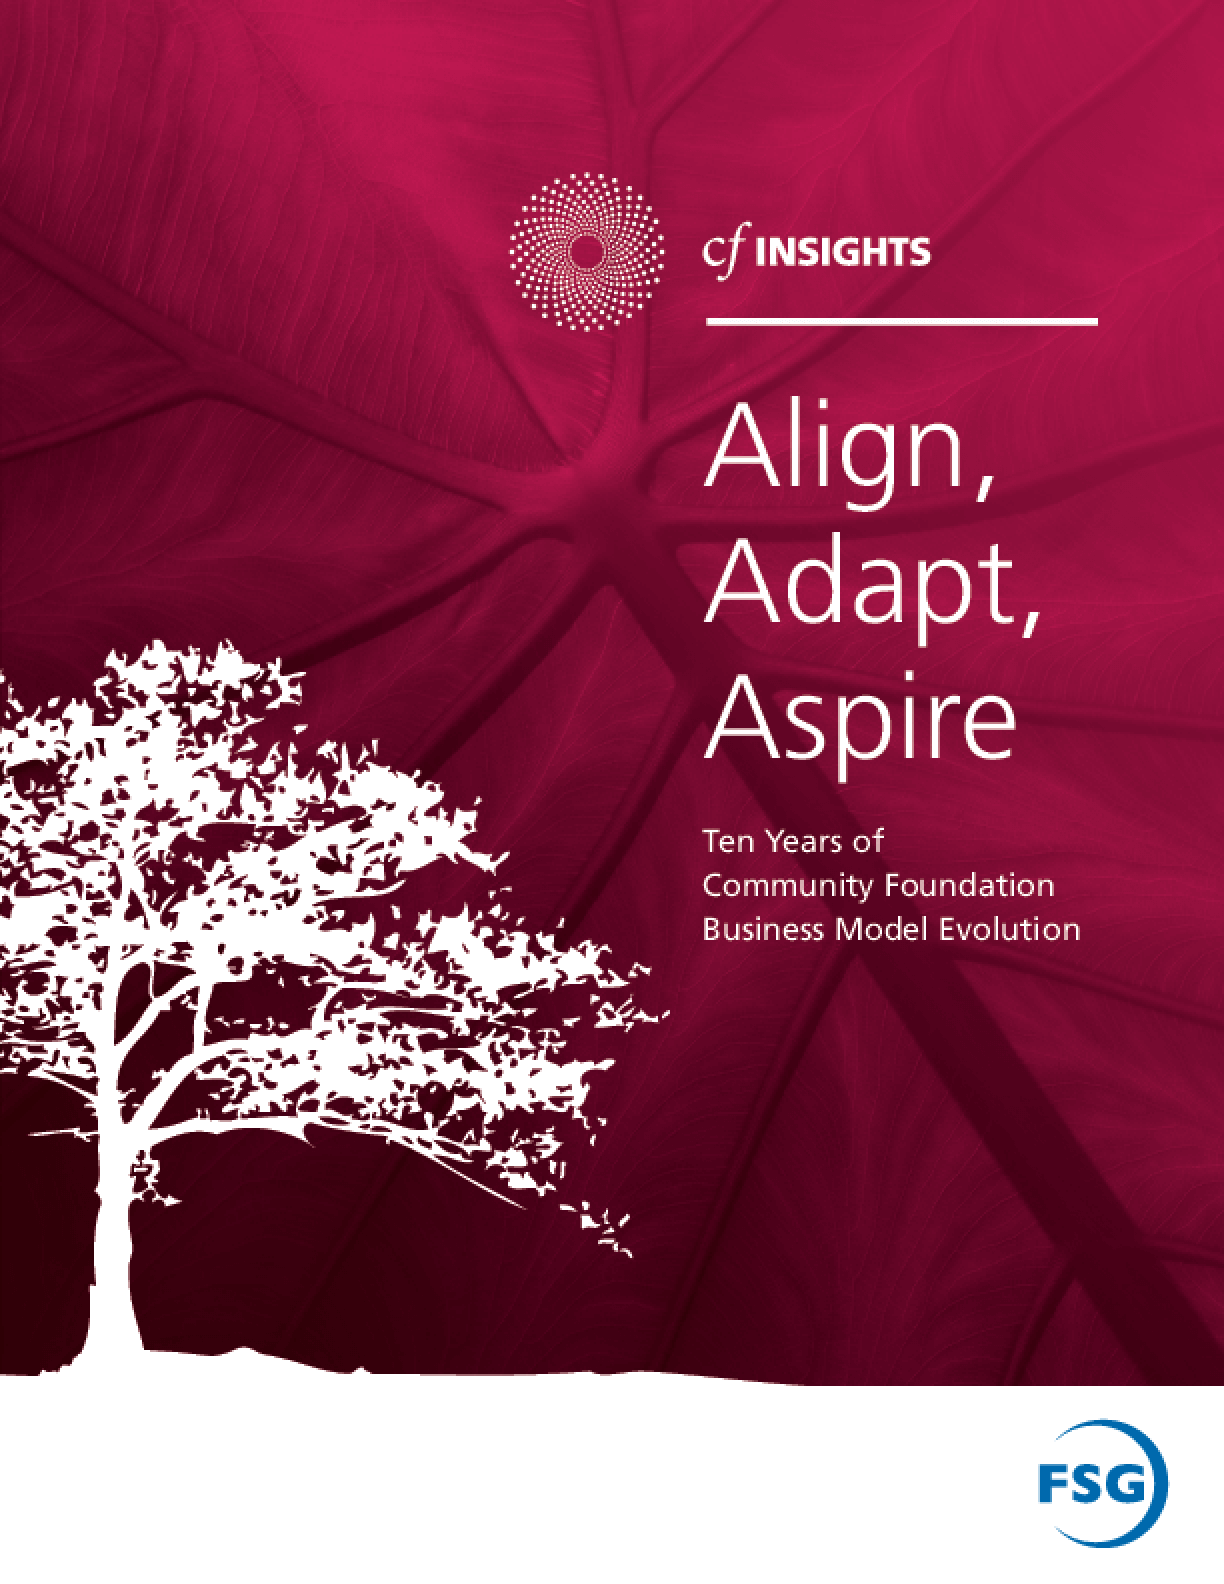 Align, Adapt, Aspire: Ten Years of Community Foundation Business Model Evolution